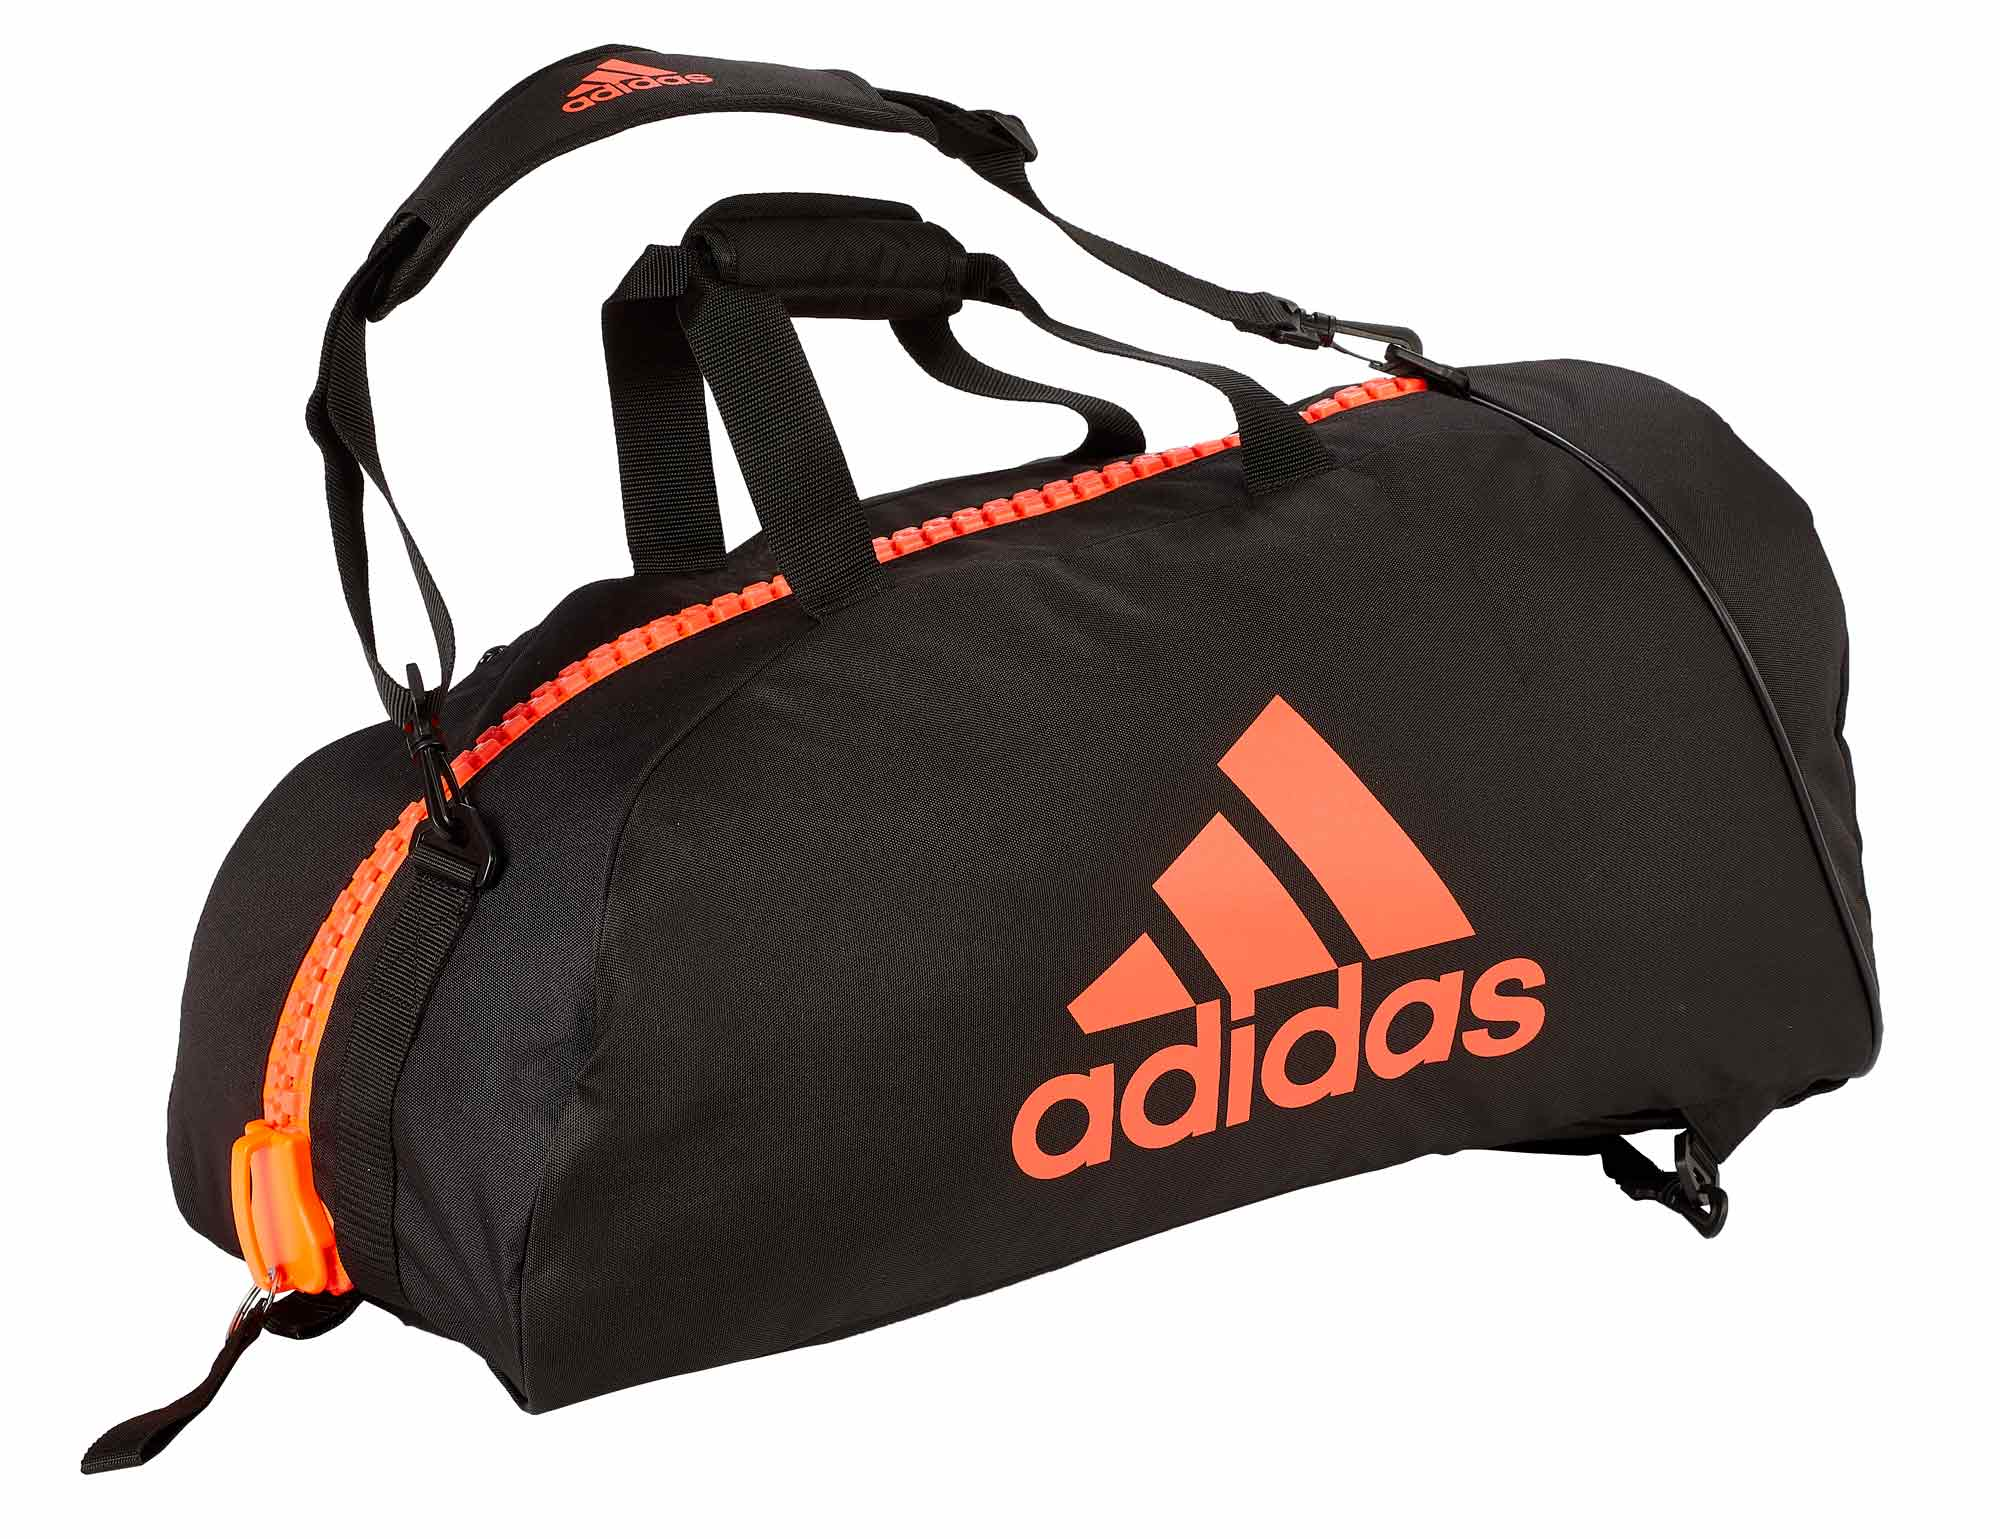 adidas 2in1 Bag